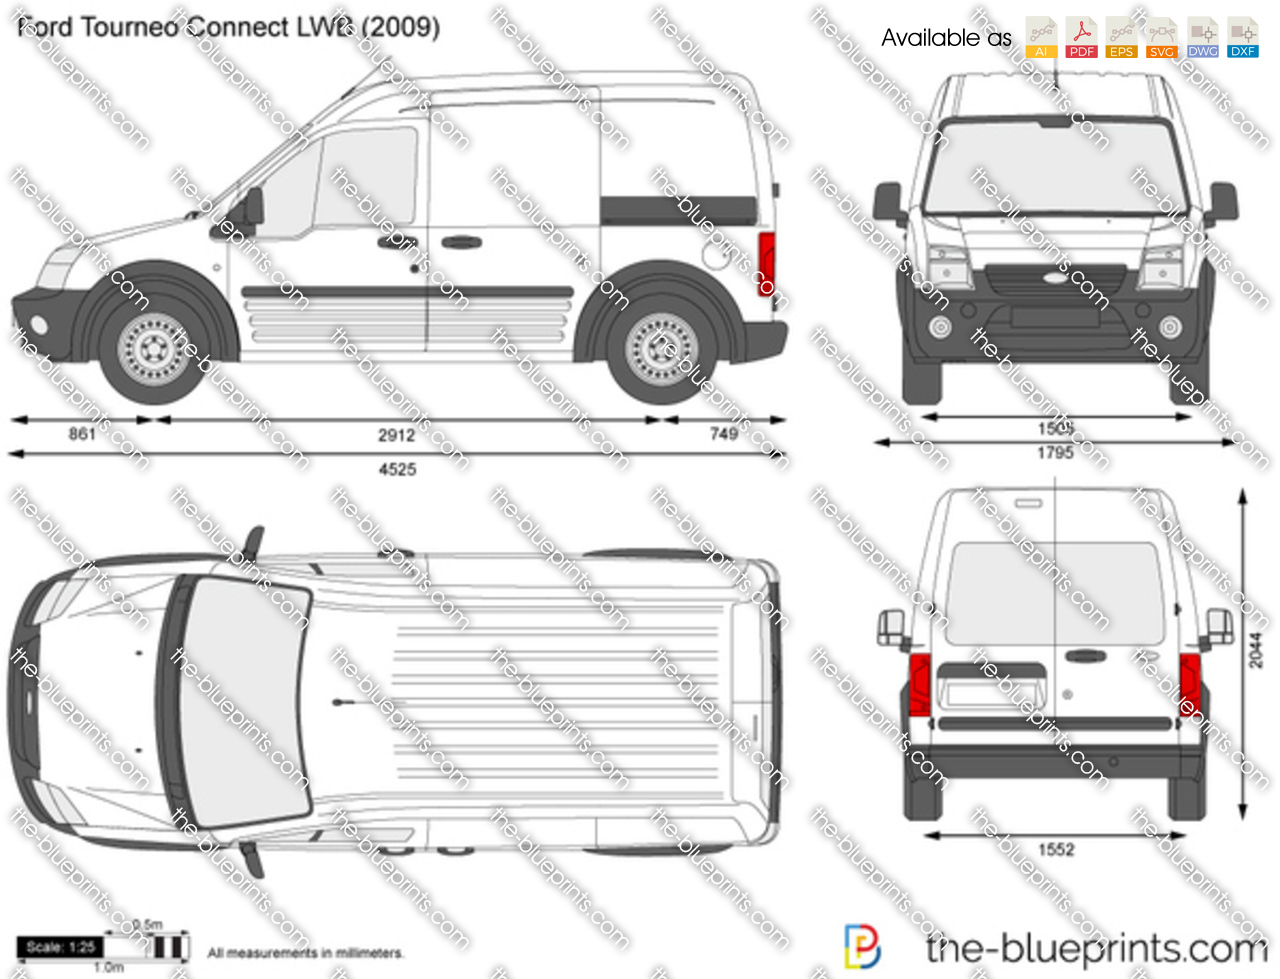 ford tourneo connect lwb vector drawing. Black Bedroom Furniture Sets. Home Design Ideas